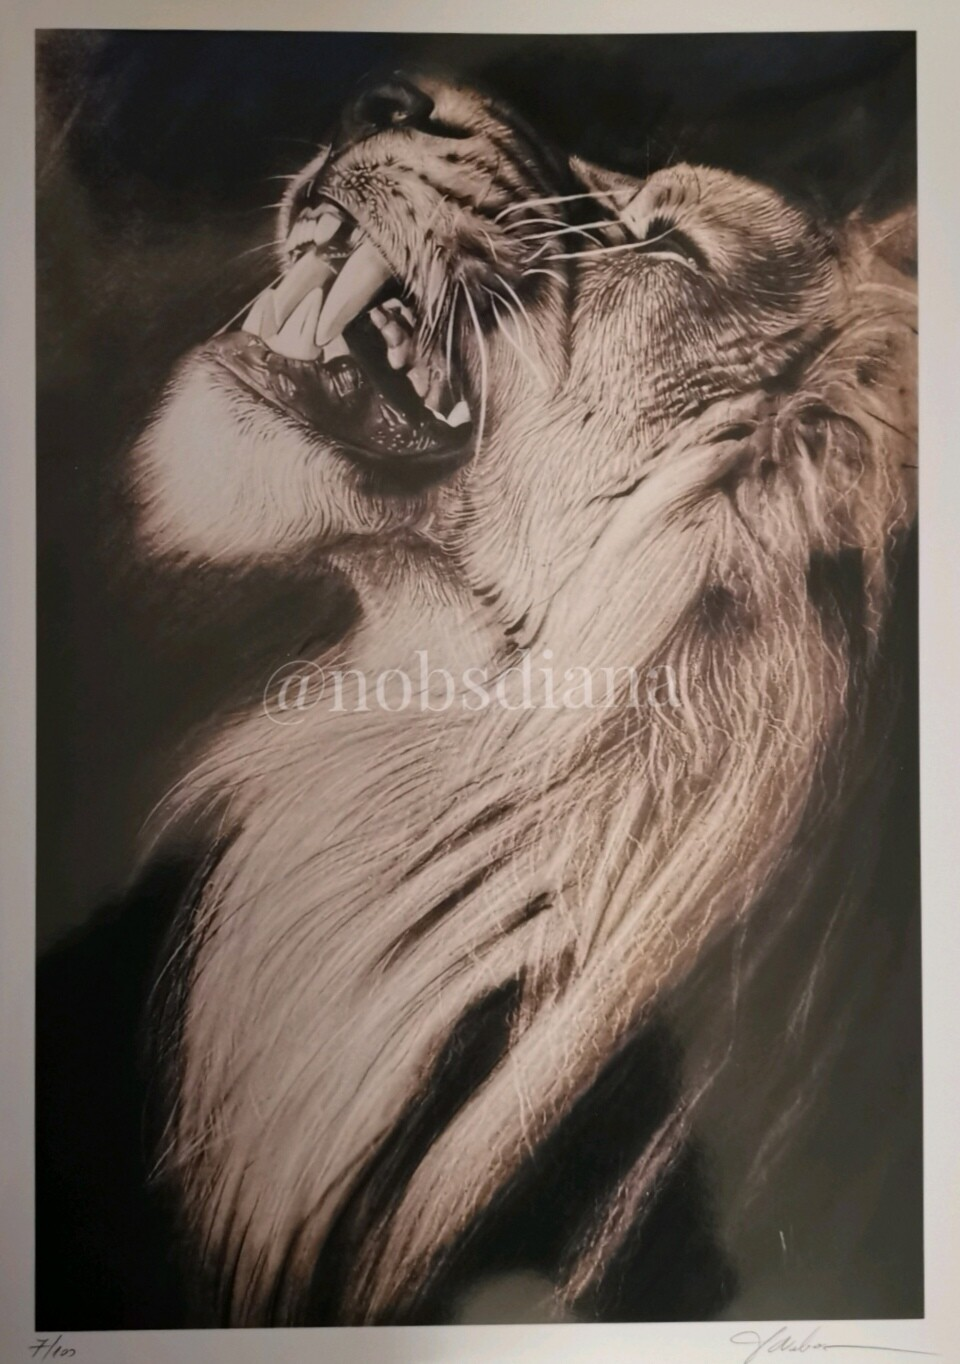 The King's wrath / Limited edition print